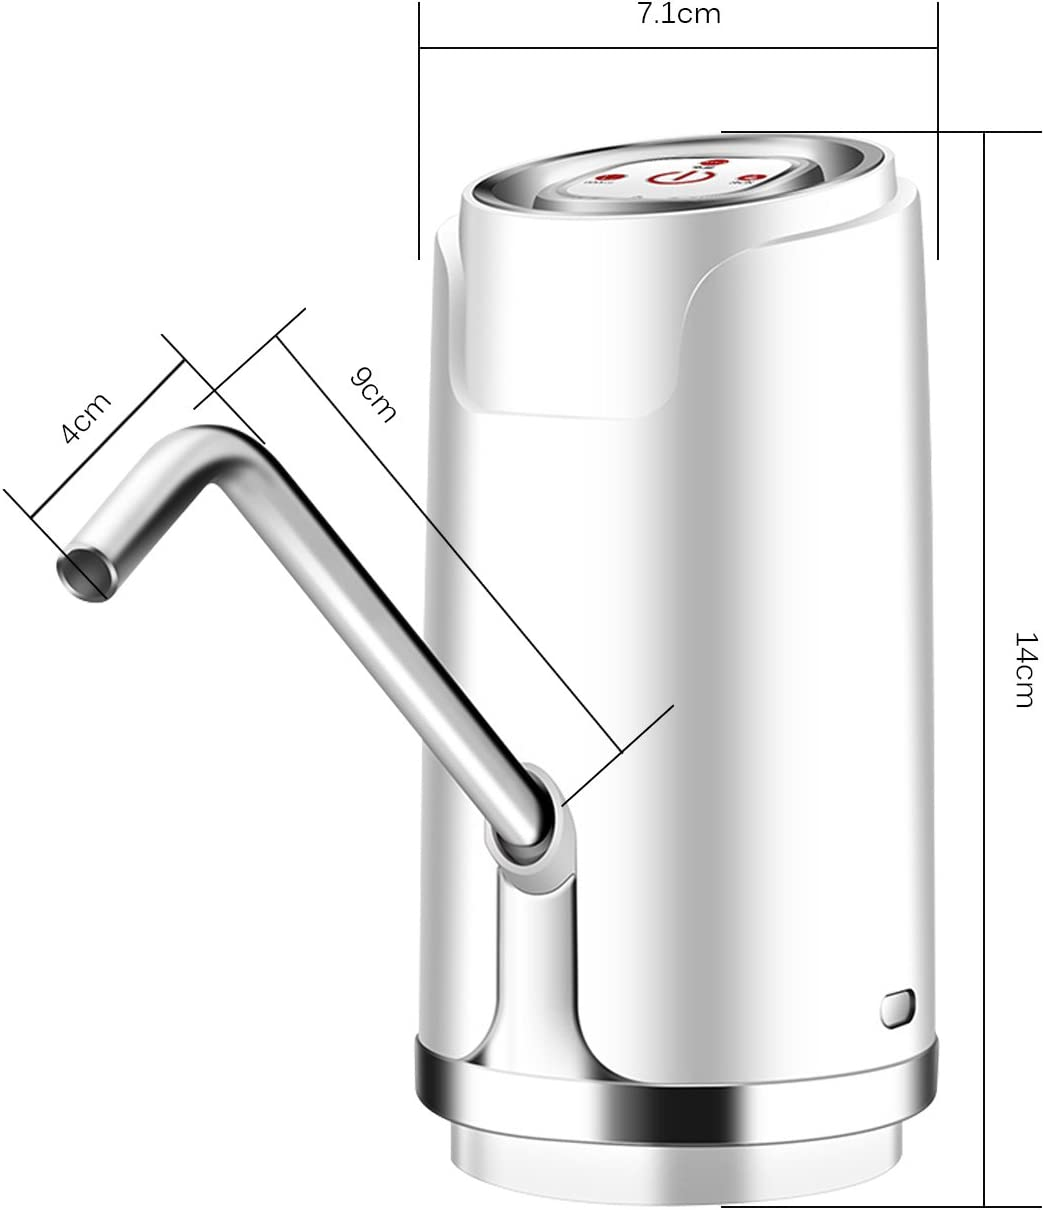 Electric Auto Water Bottle Pump Fast Pumping Pump Dispenser USB Powered Electric Water Dispenser Water Bottle OurLeeme Water Bottle Pump